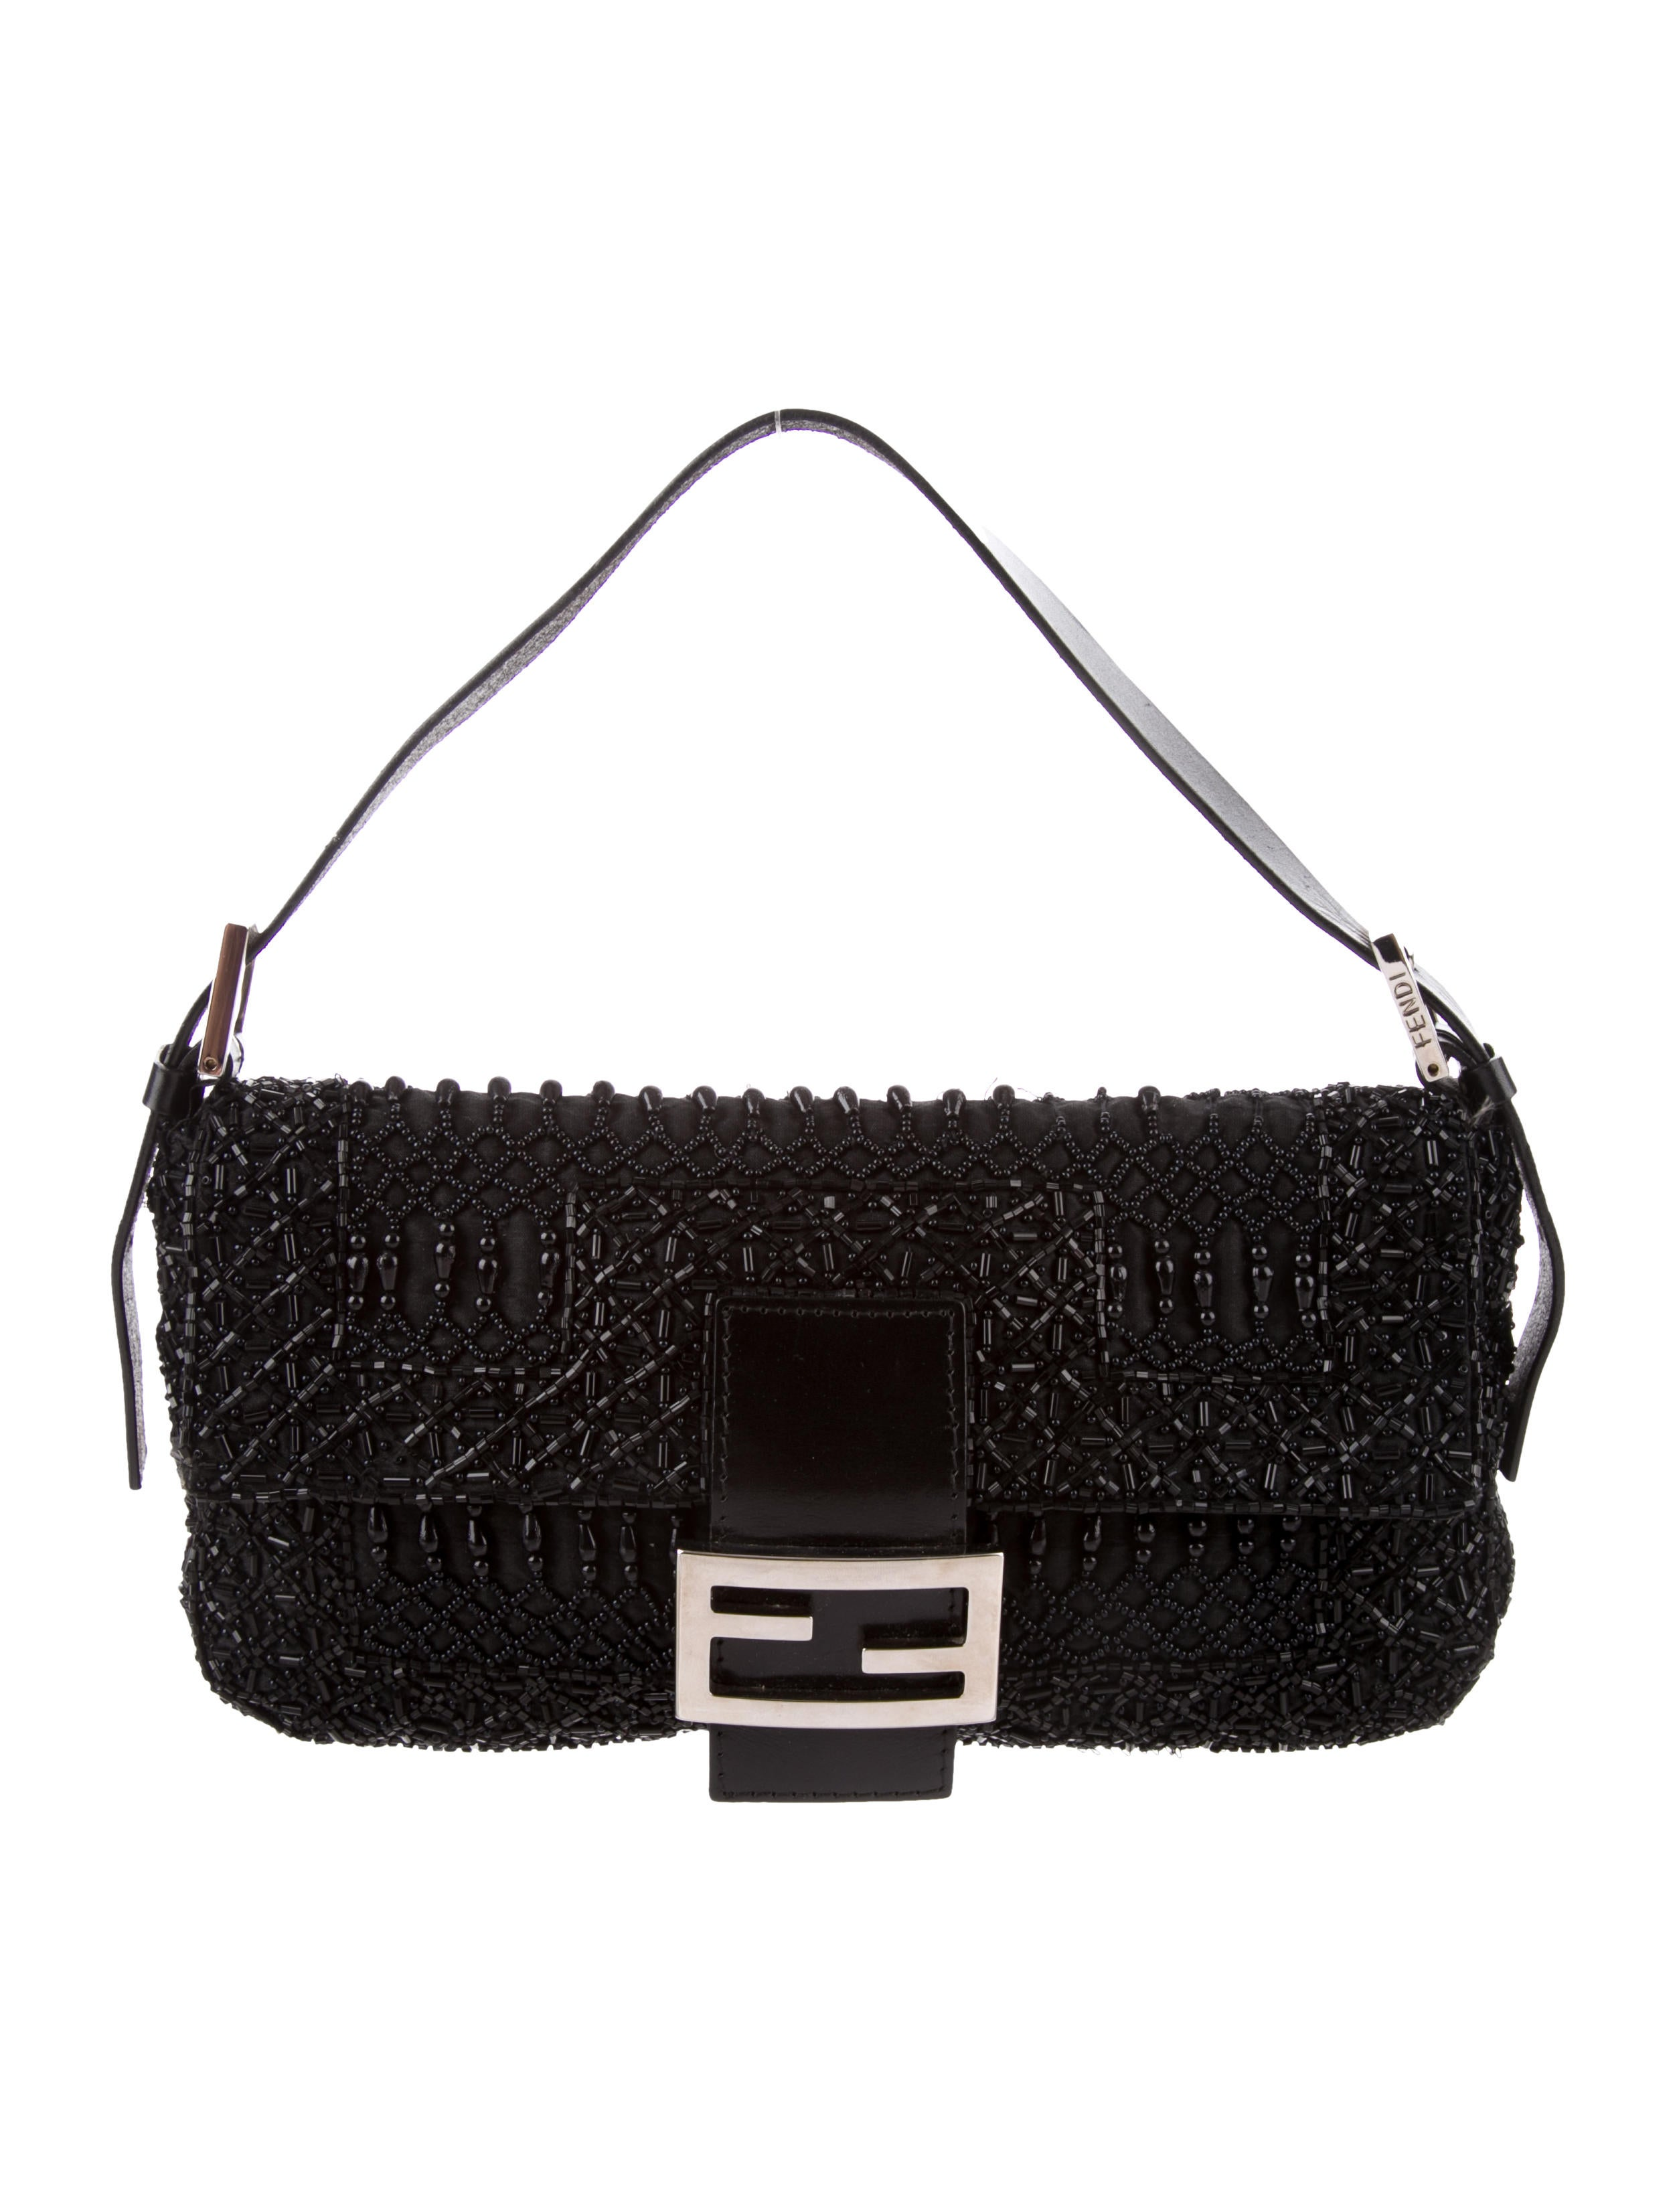 9cbbbe9989c ... small shoulder bag comes w dustbag care card d938e 2e0eb  order fendi  beaded baguette baguette bag fendi beaded beaded fendi bag vddgwr 2e58f  b3af6